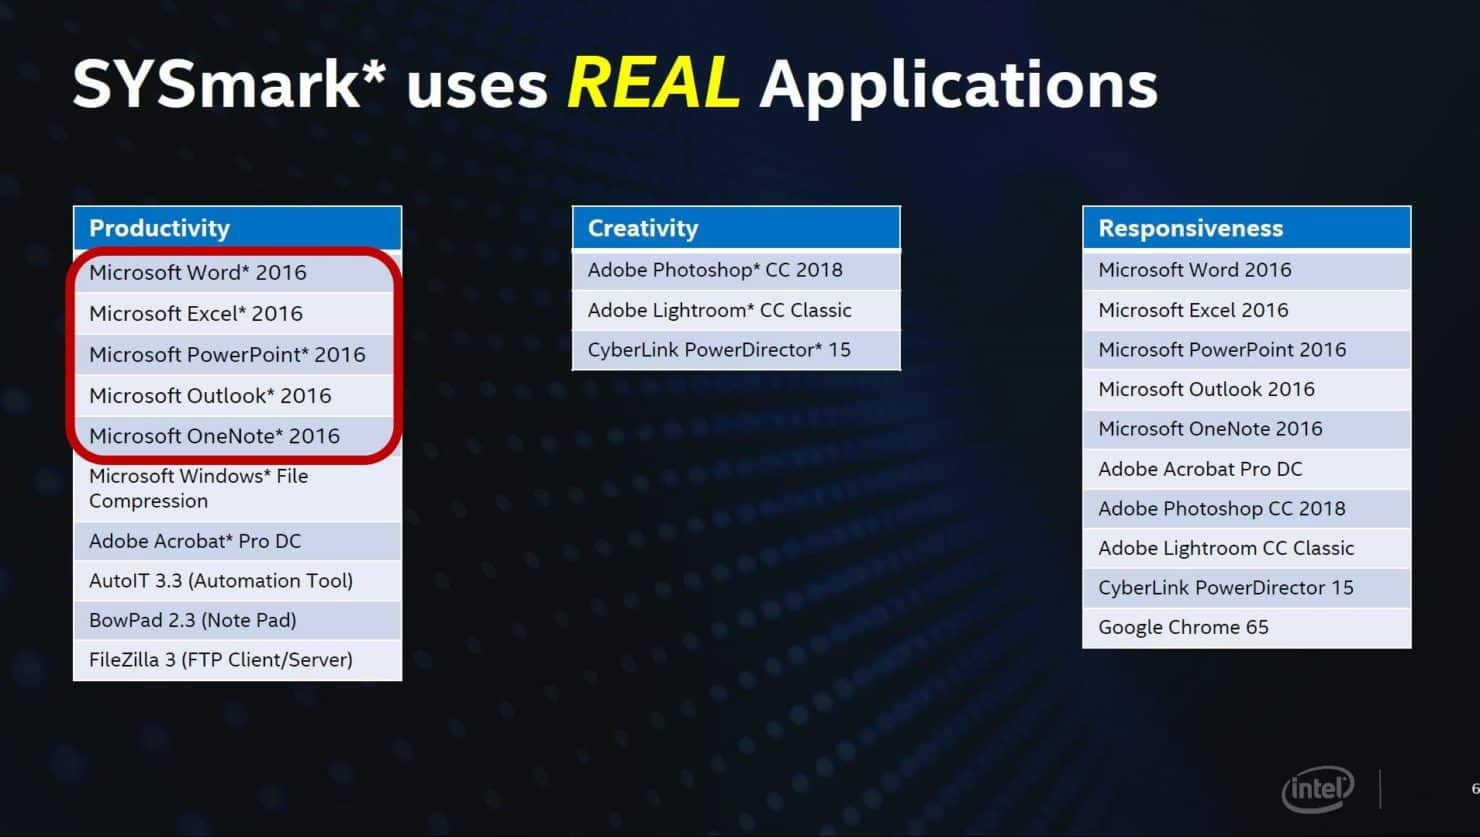 INTEL REAL USAGE DOSSIER